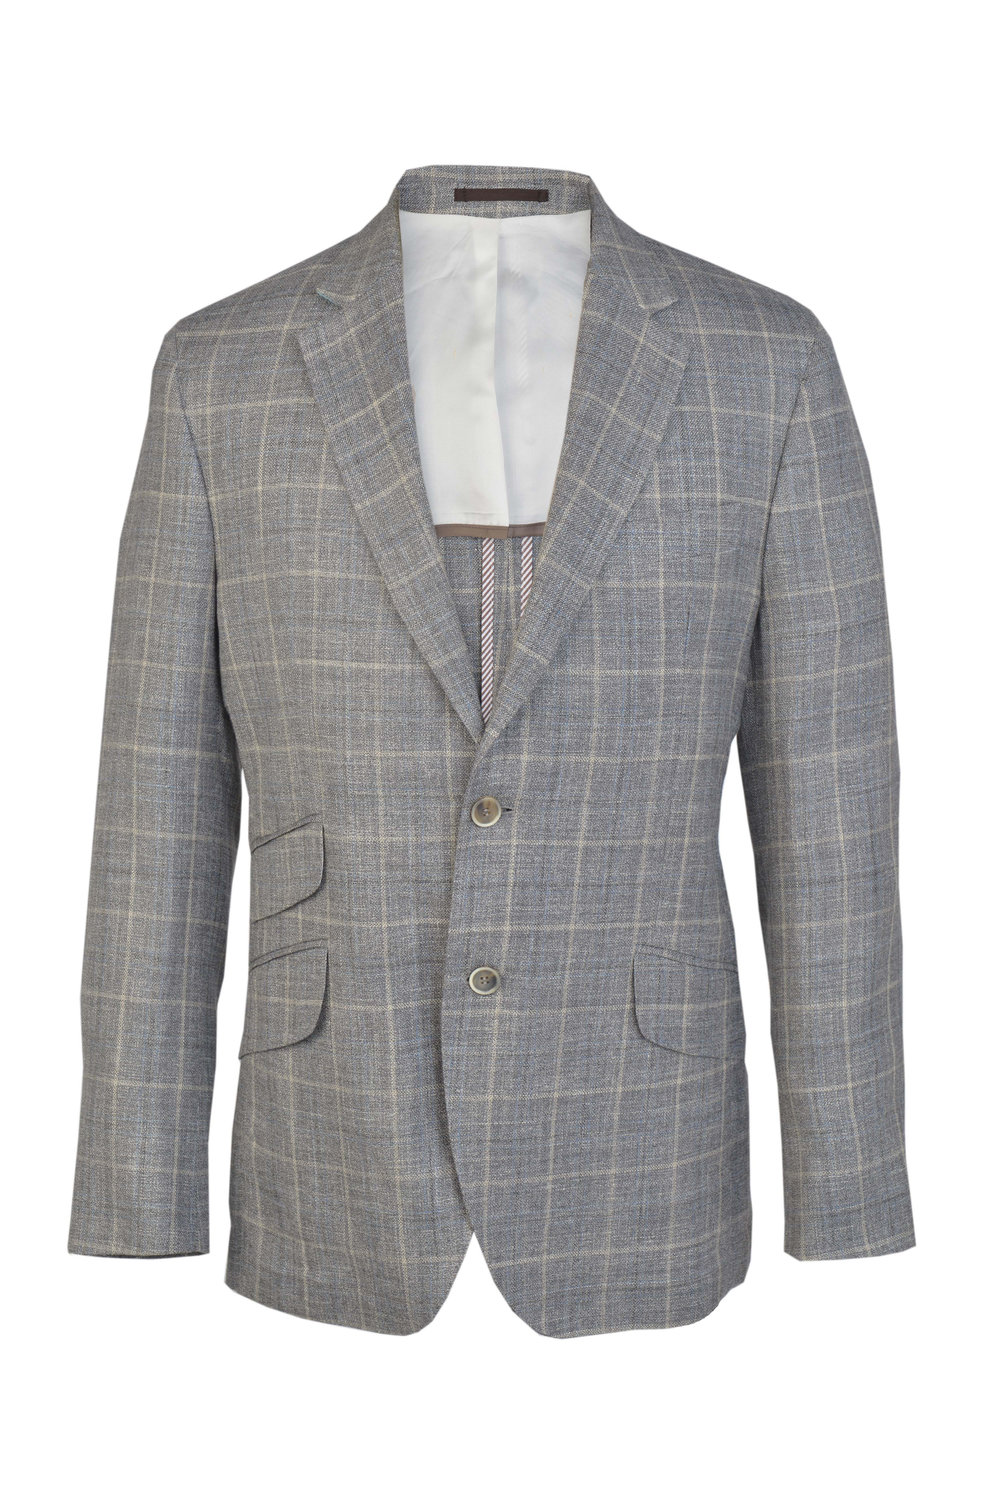 Hackett - Original price  730 € - Outlet price in MMV 486 € LR